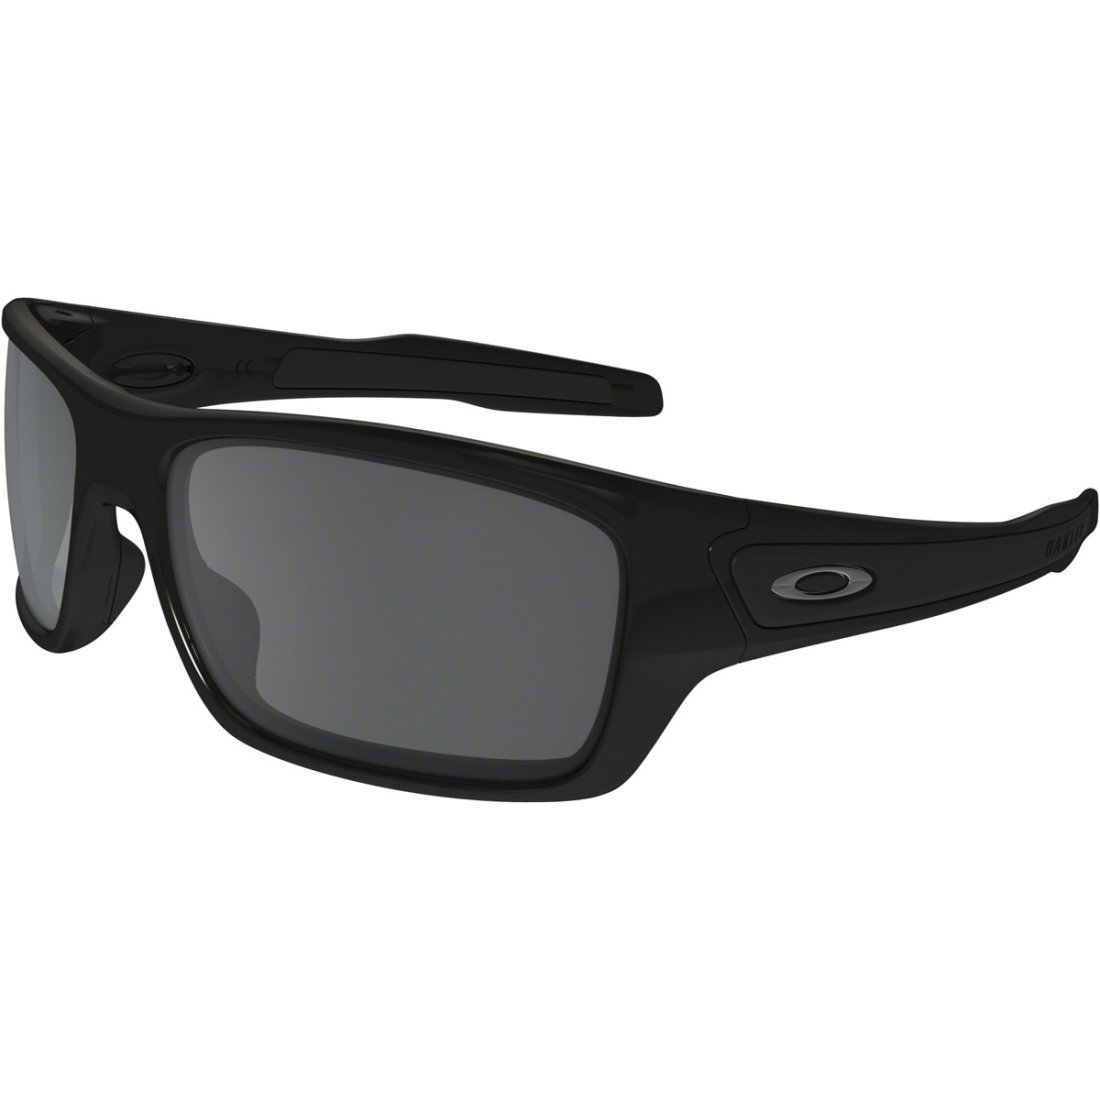 Masque Lunettes Black Turbine Iridium Polished Oakley dsQCrth